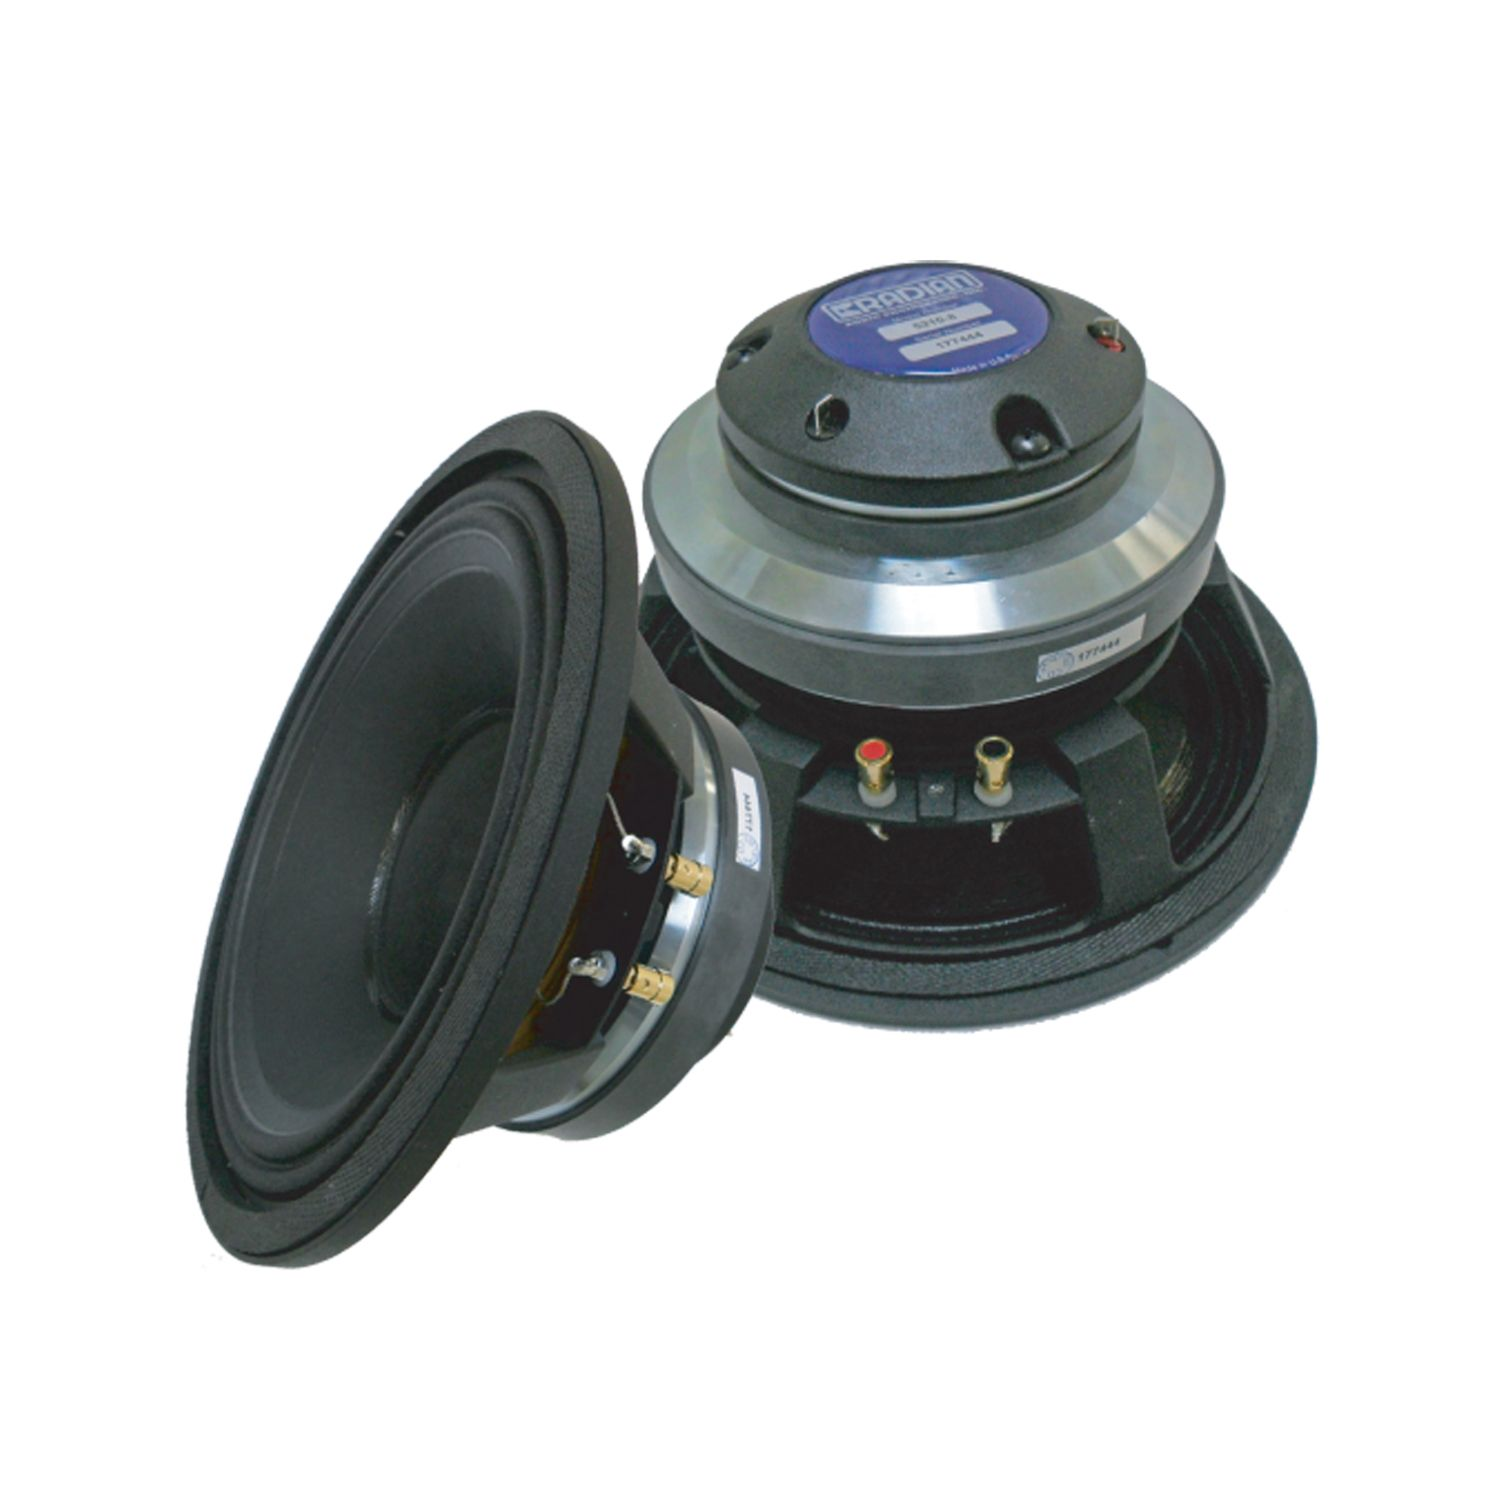 5210 10 coaxial speaker radian audio compact cars